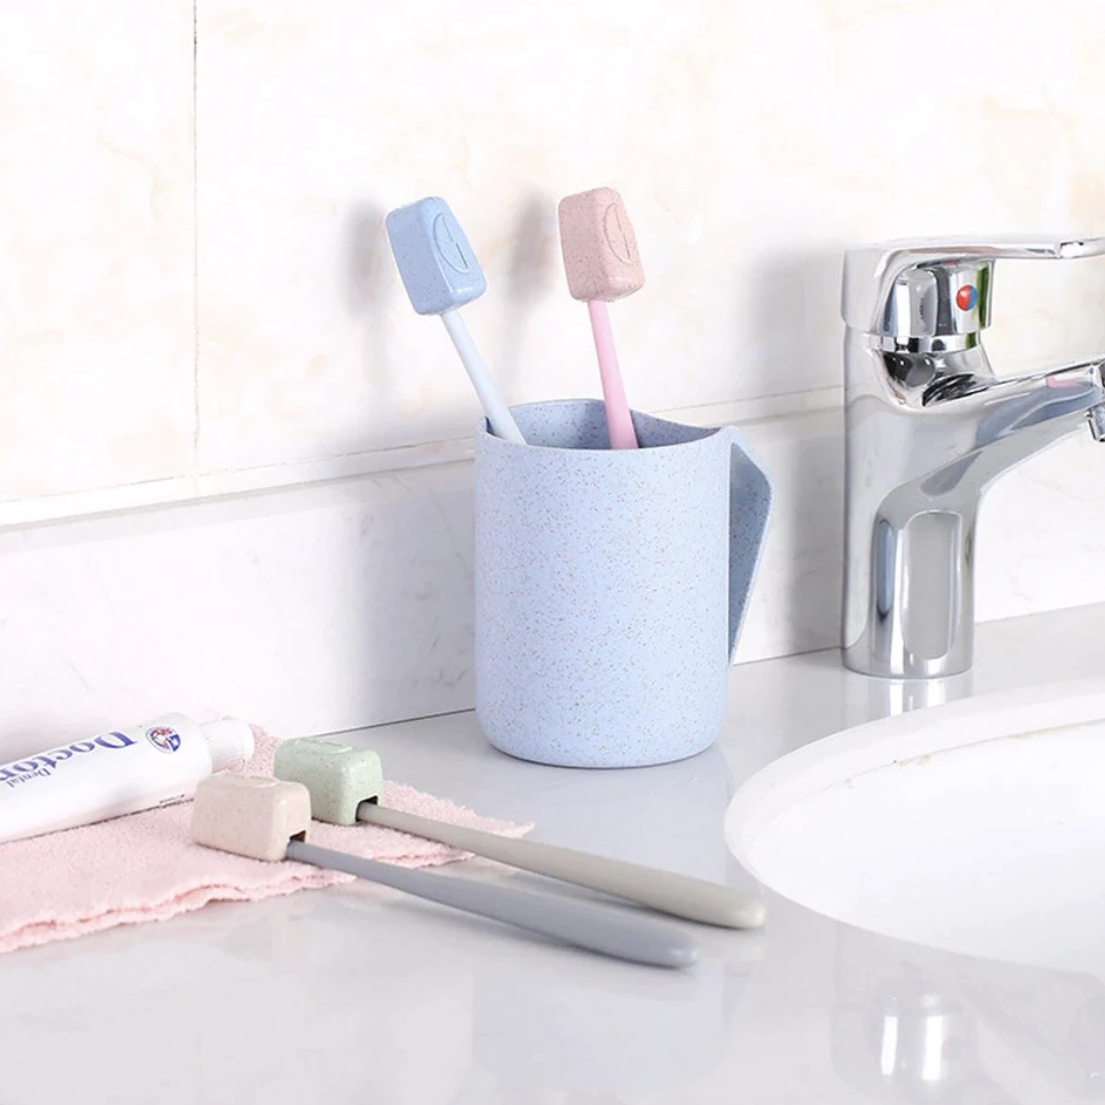 Toothbrush Covers (Set of 4)